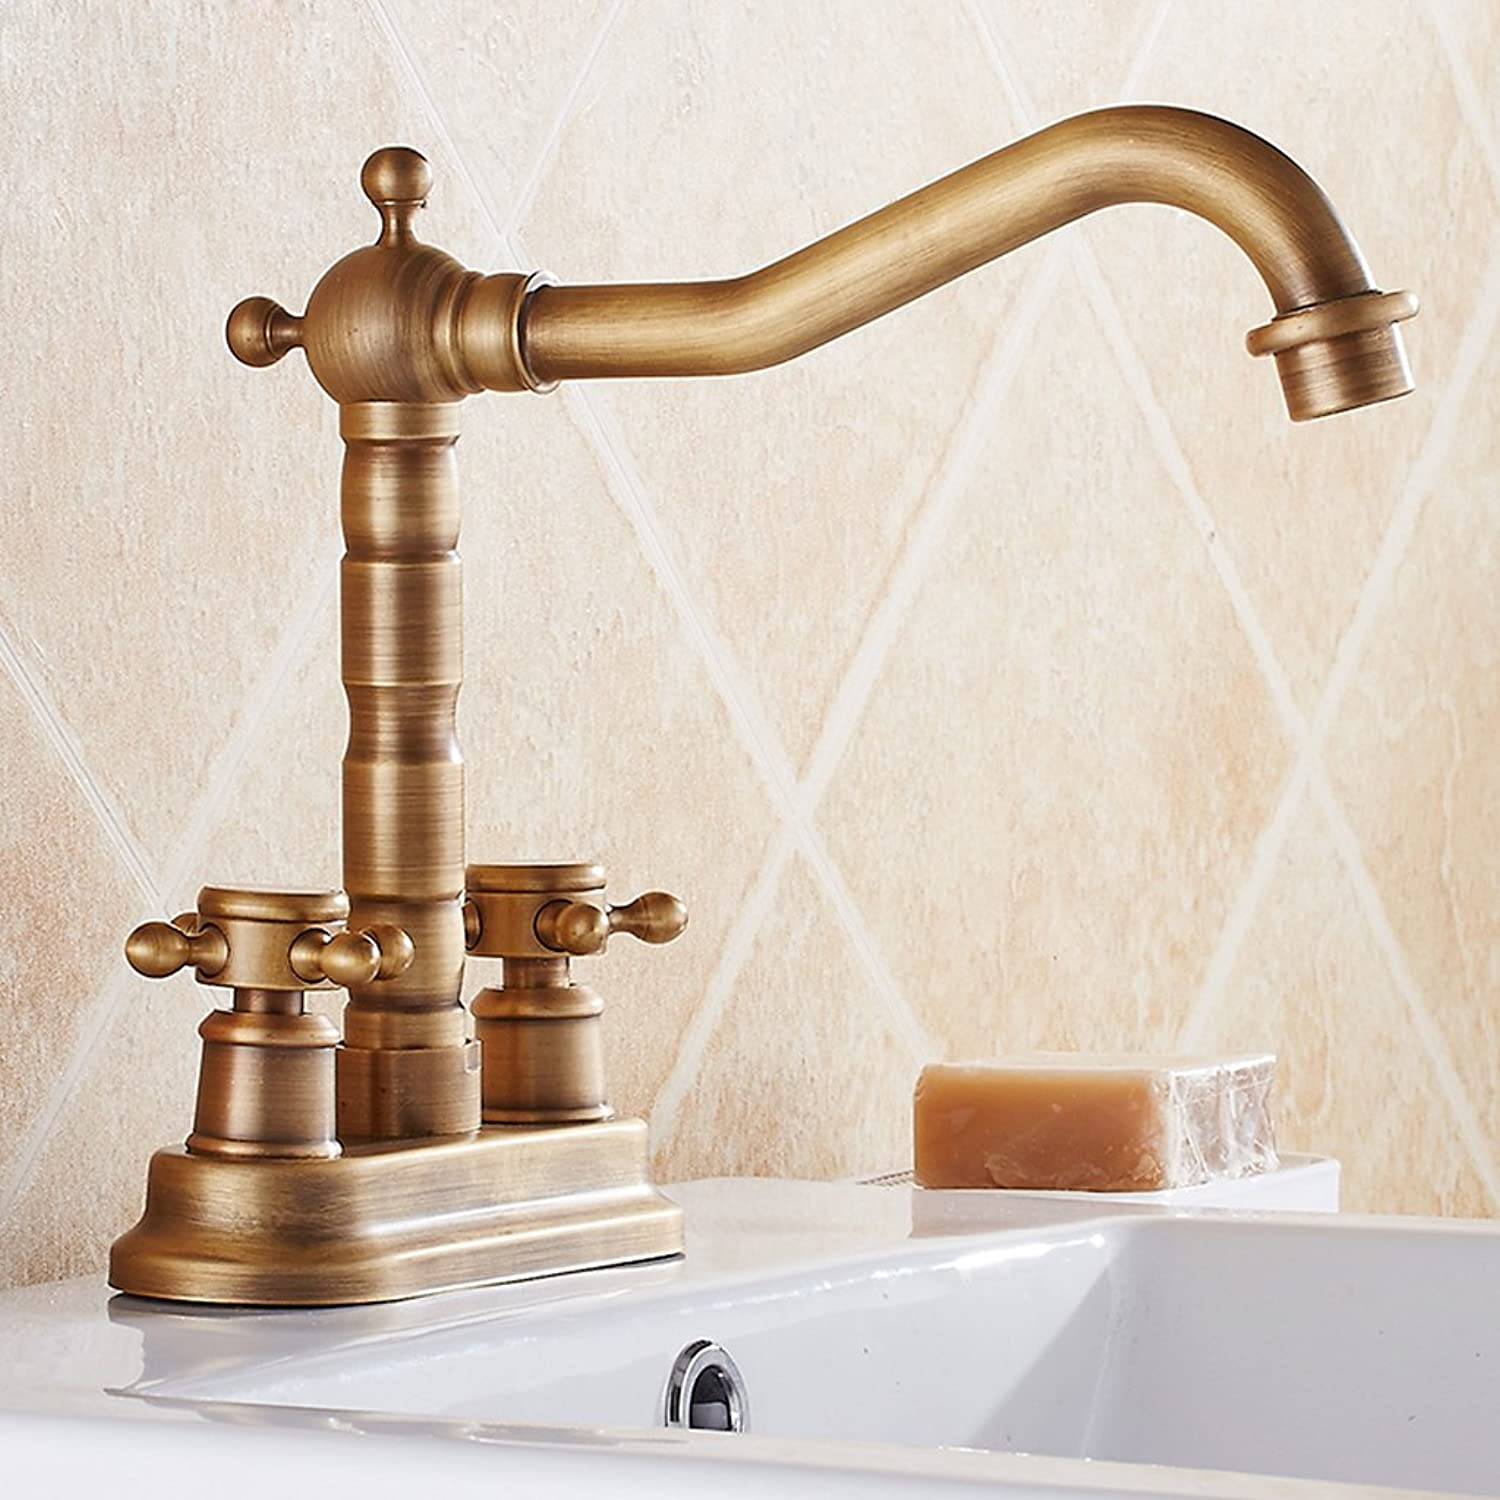 Full Copper Antique Double Basin Faucet hot and Cold Water faucets can be redated